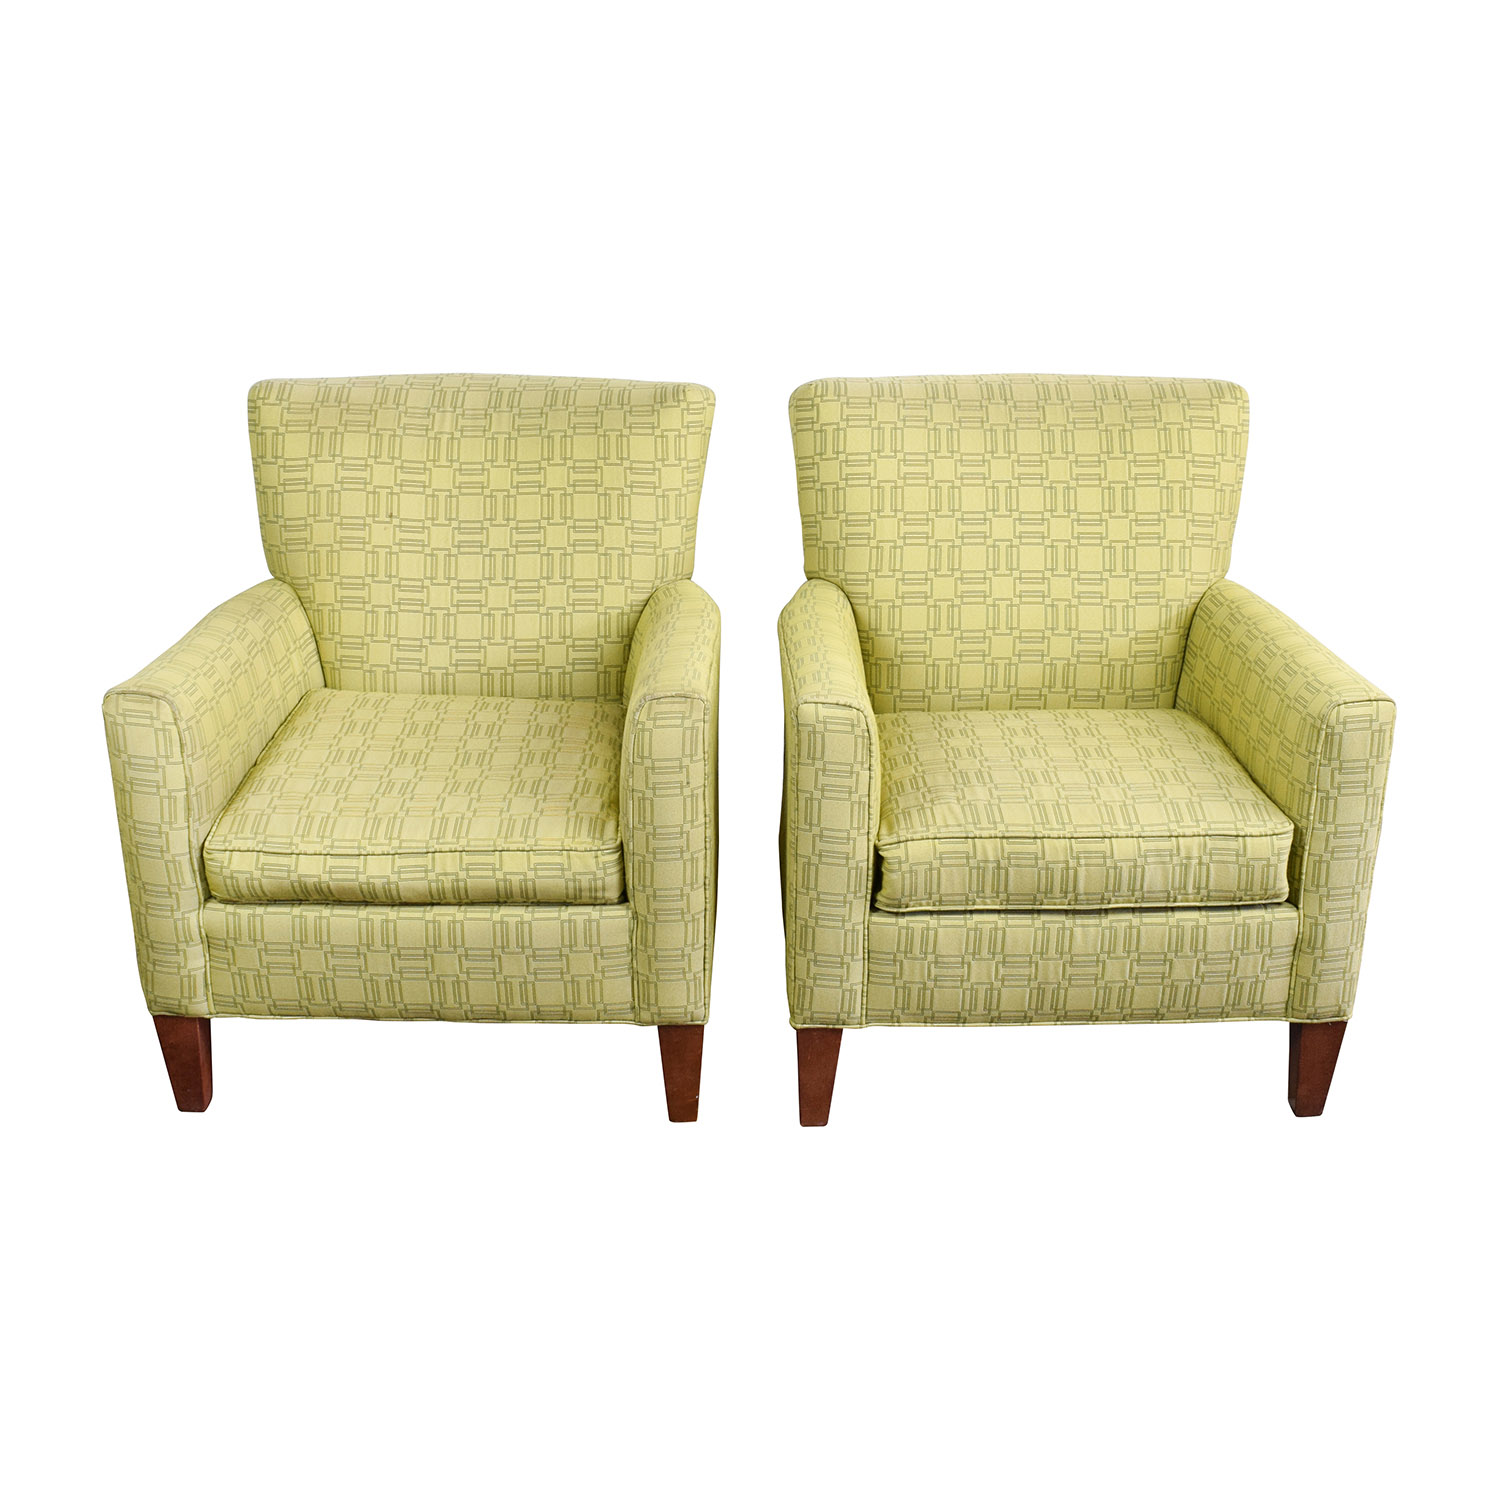 ... Ethan Allen Ethan Allen Green Upholstered Accent Chairs Discount ...